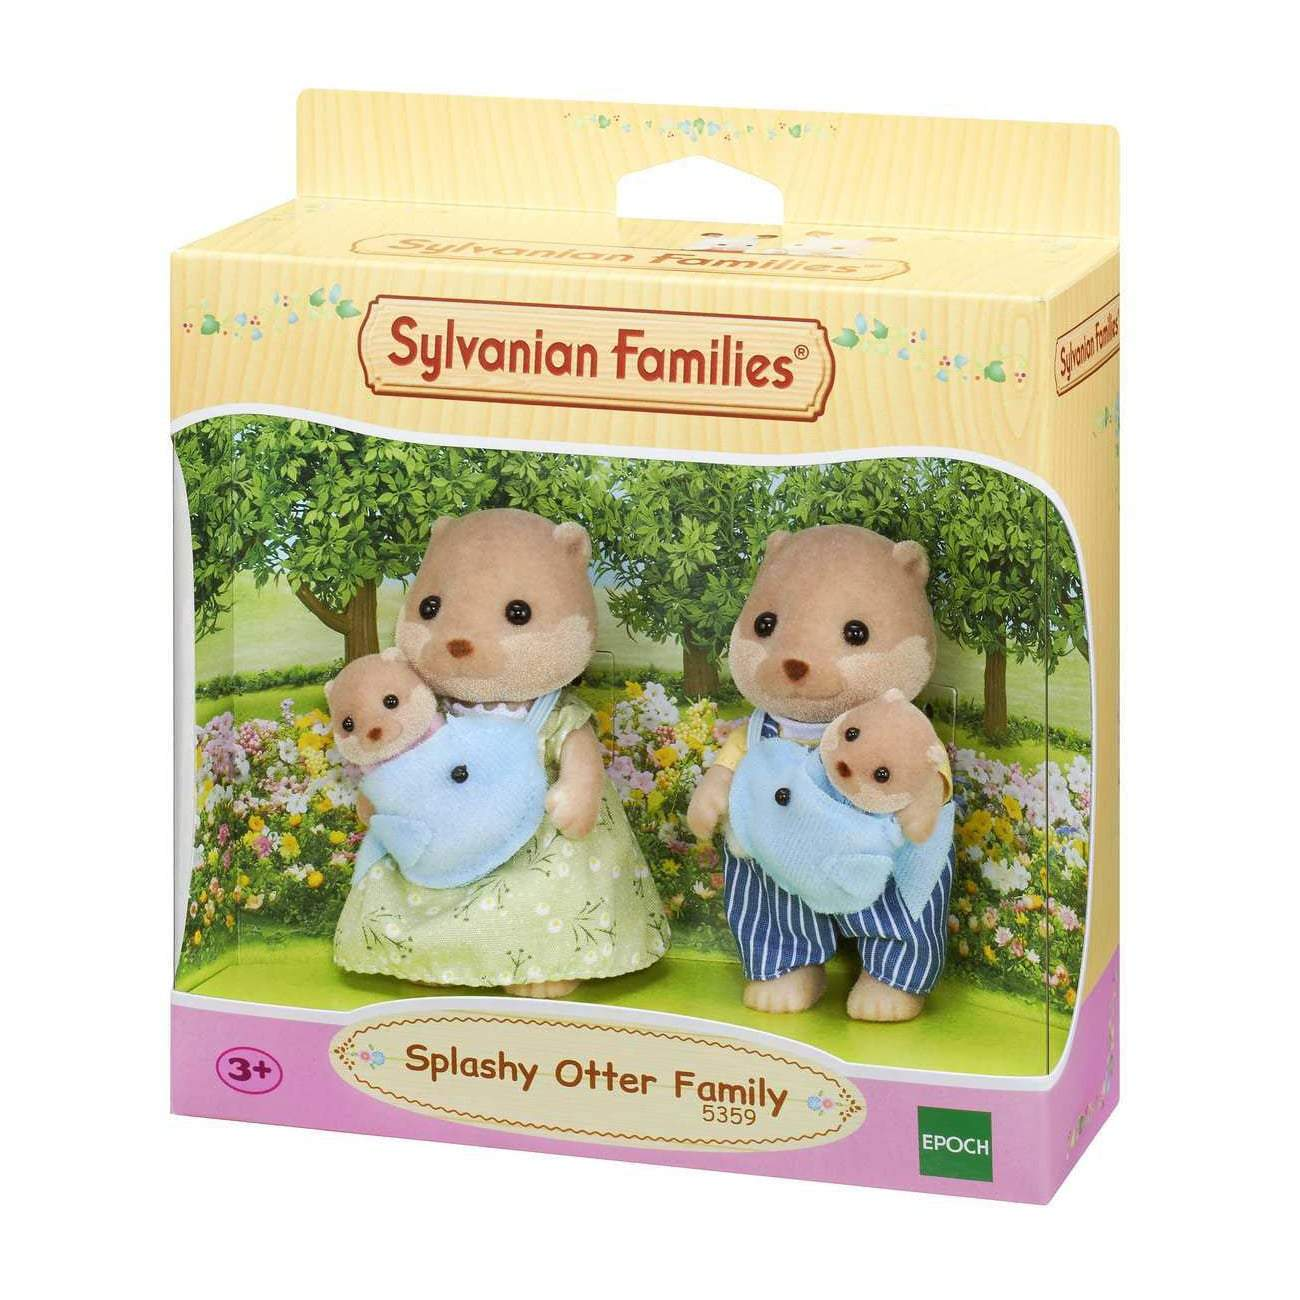 Sylvanian Family - Splashy Otter Family